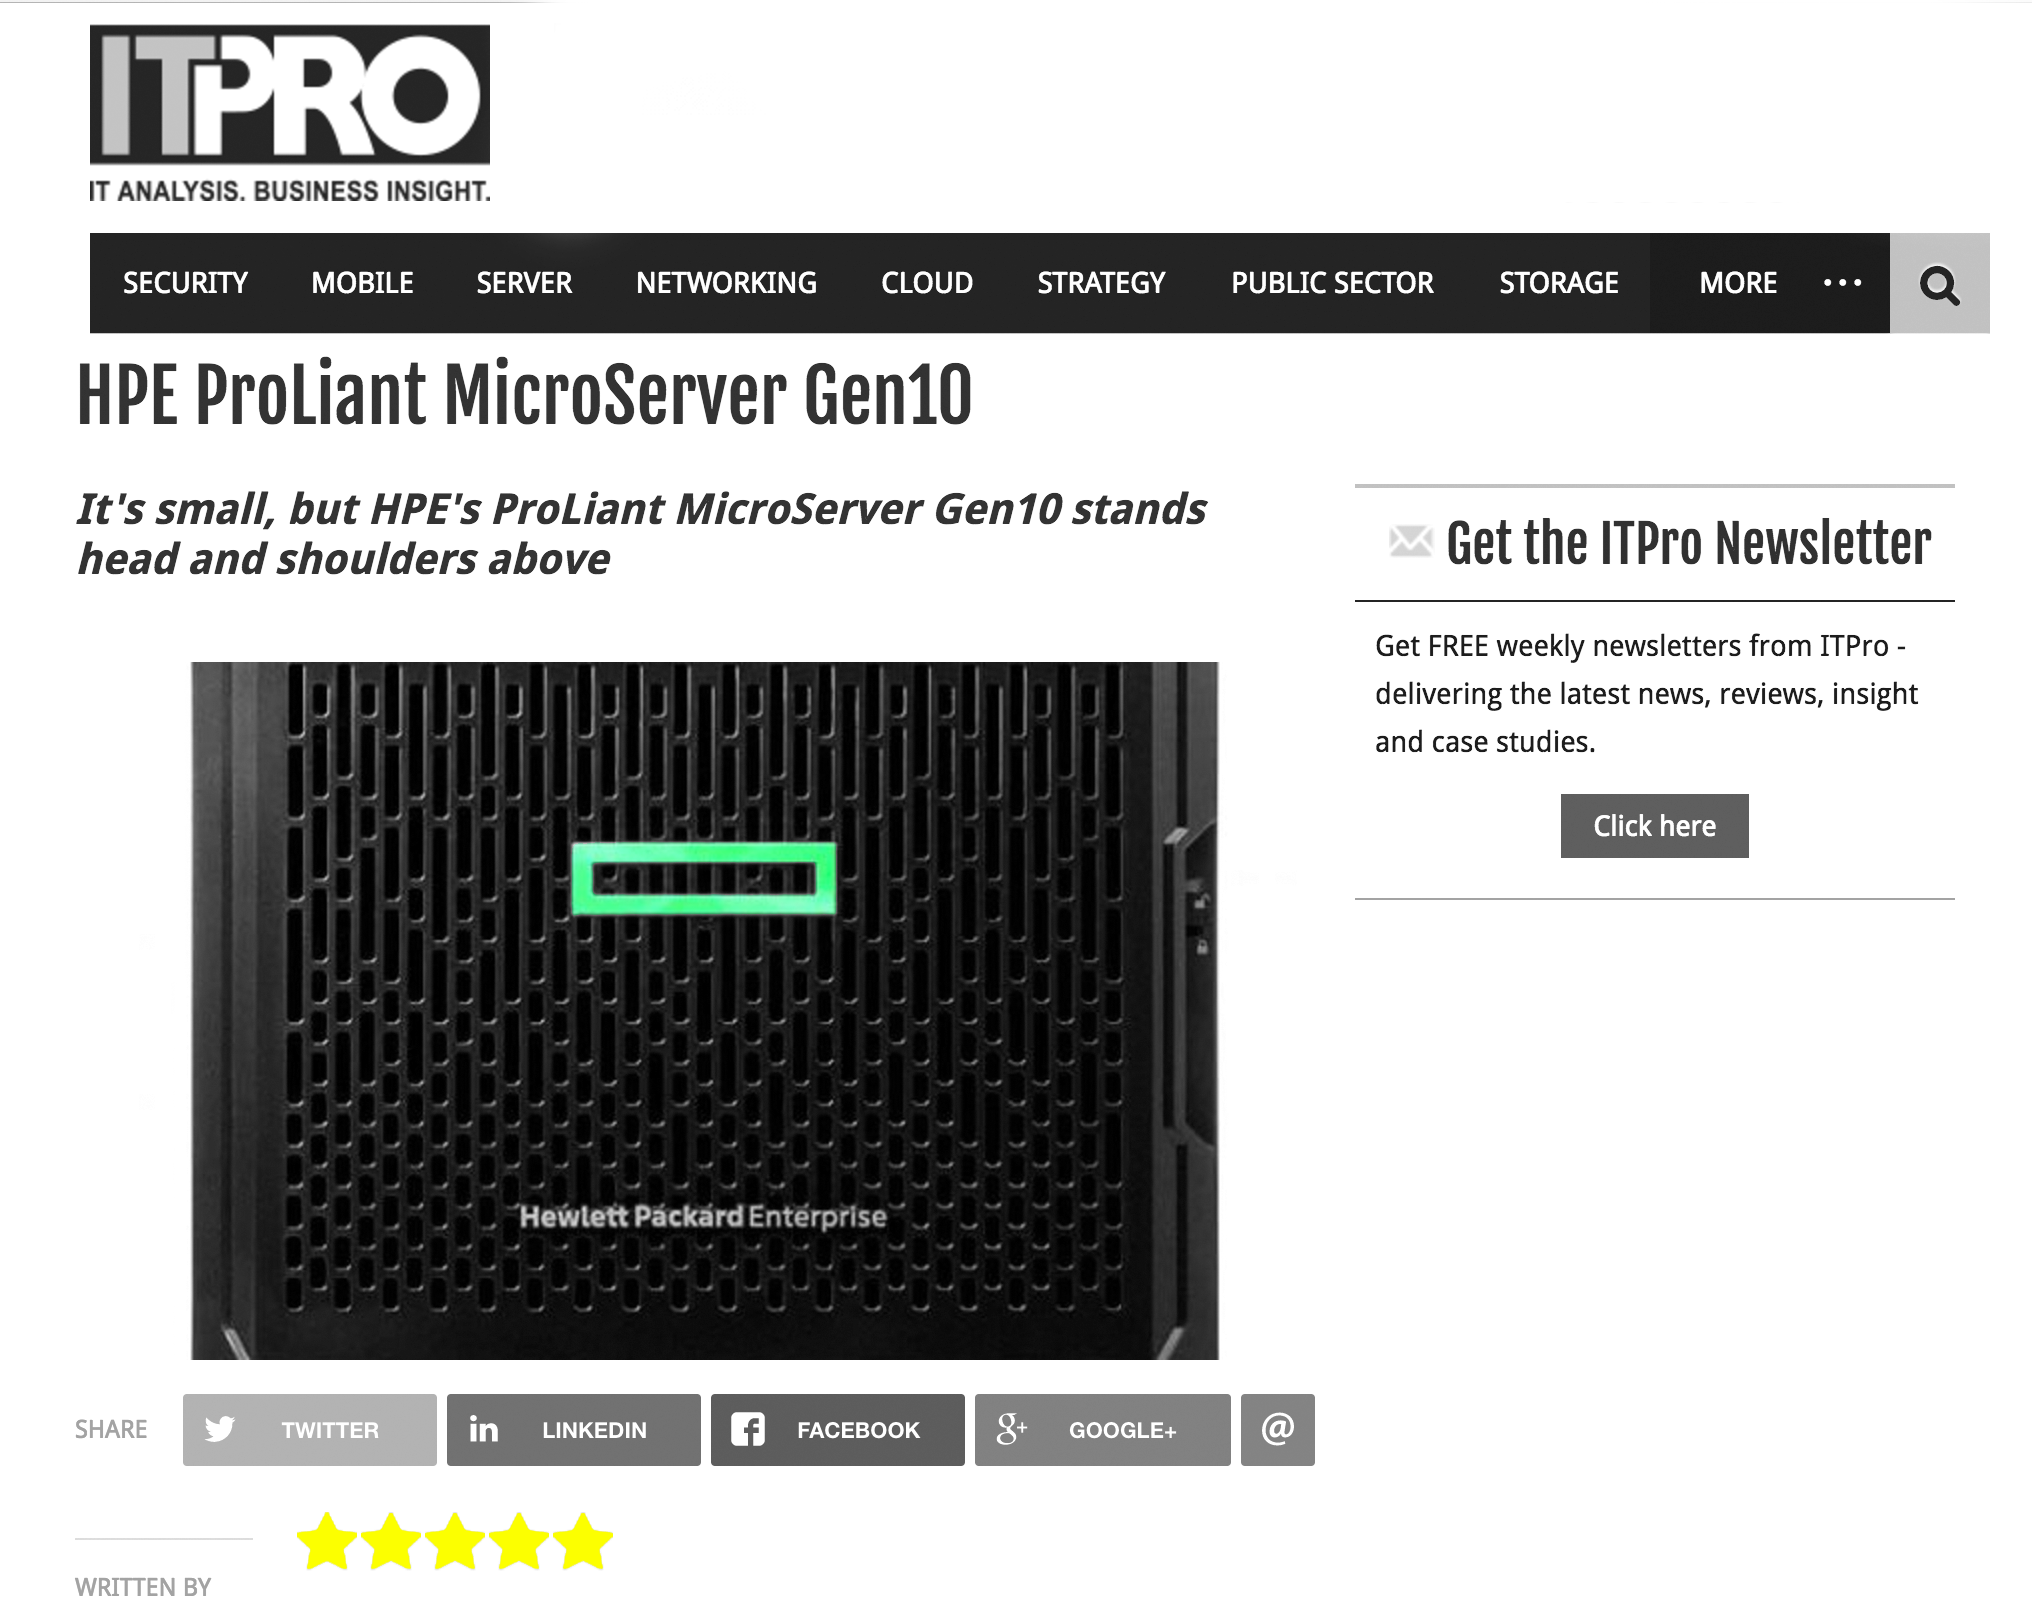 IT Pro Gives 5-star Review to ClearOS and HPE Gen10 ProLiant MicroServer